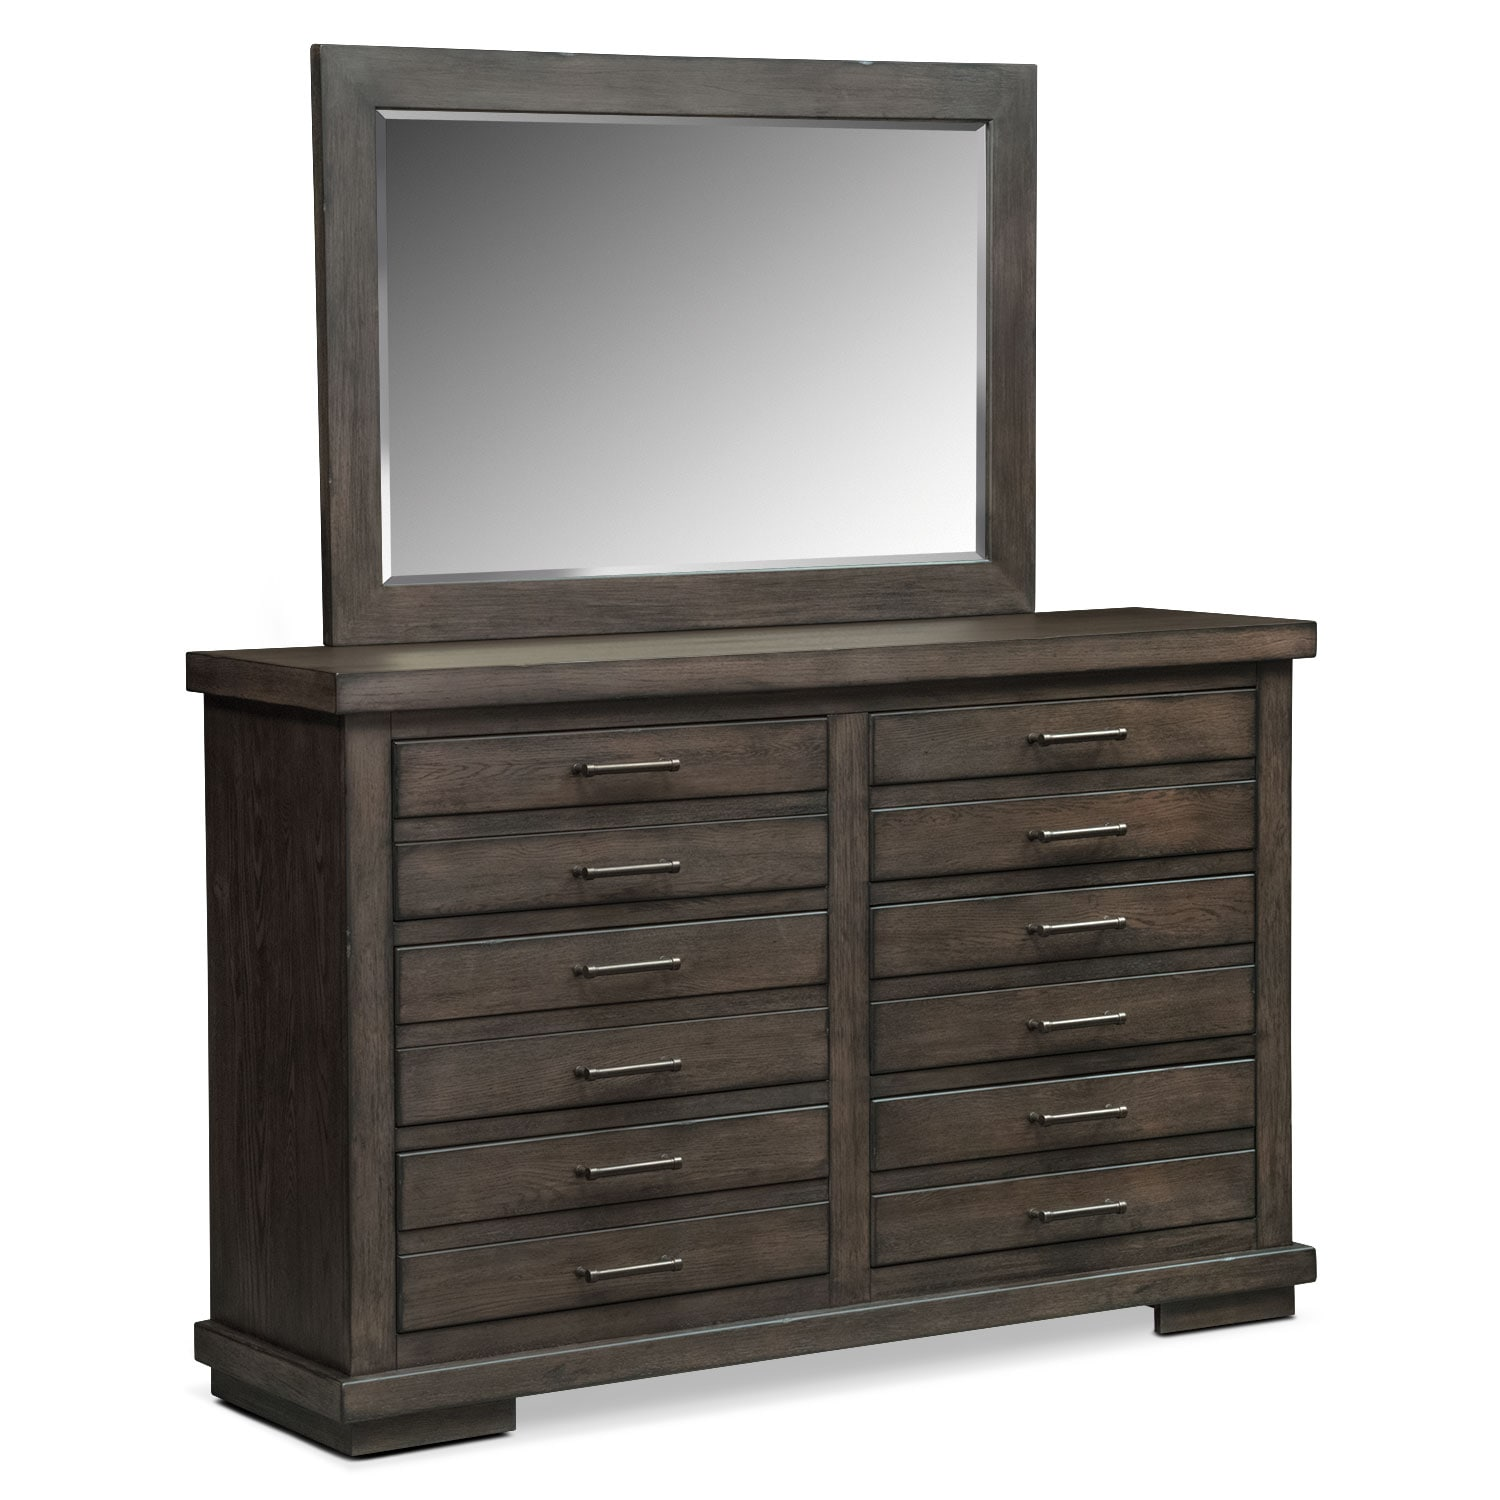 Bedroom Furniture - Jamestown Dresser and Mirror - Sable